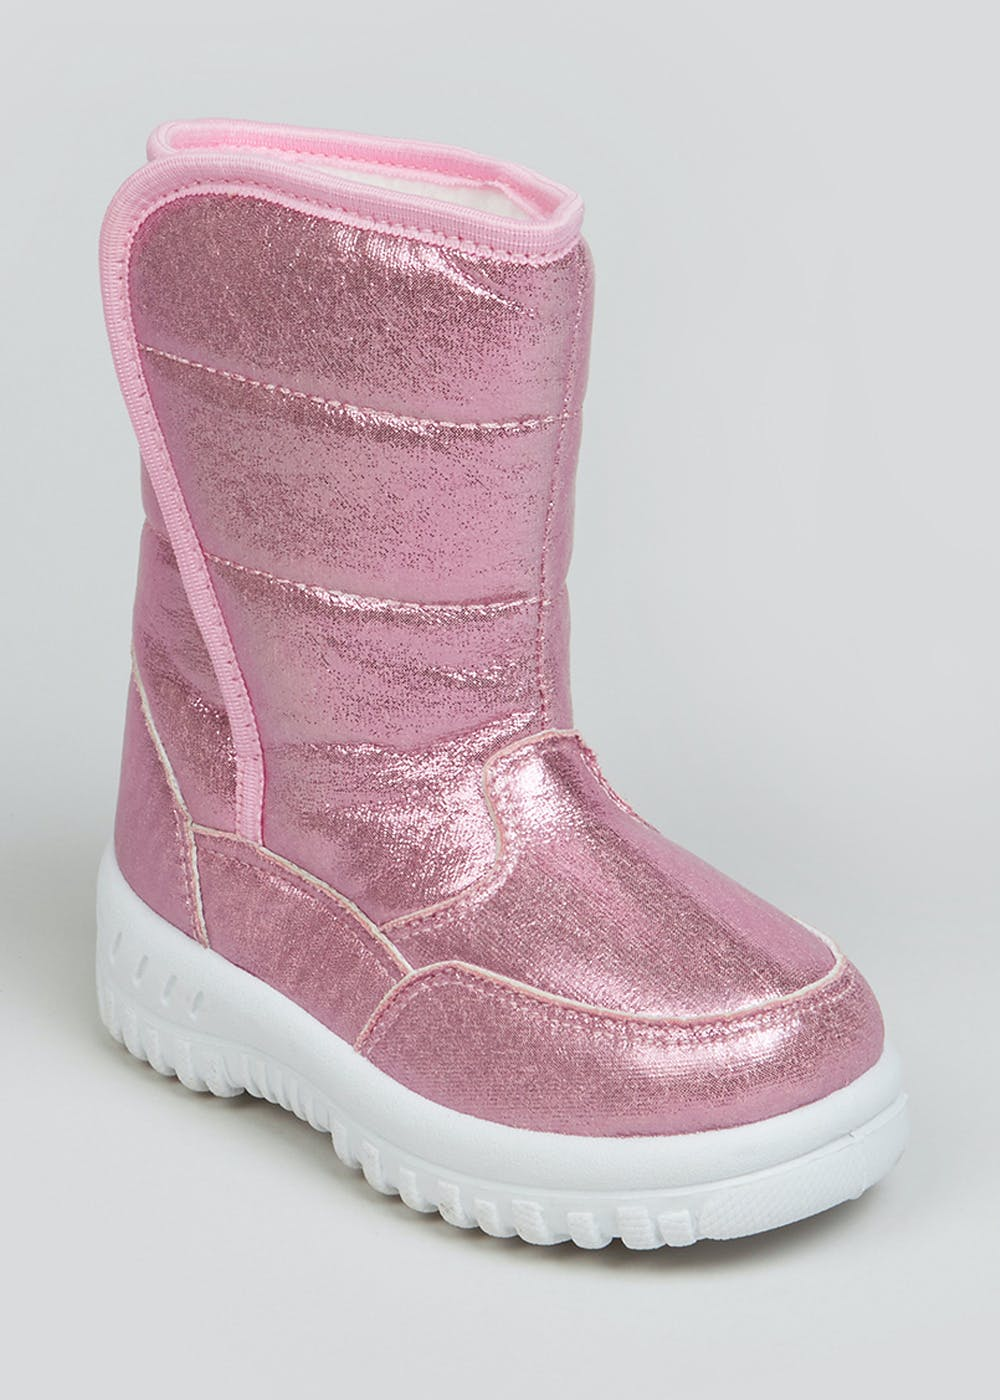 Girls Pink Snow Boots (Younger 4-12